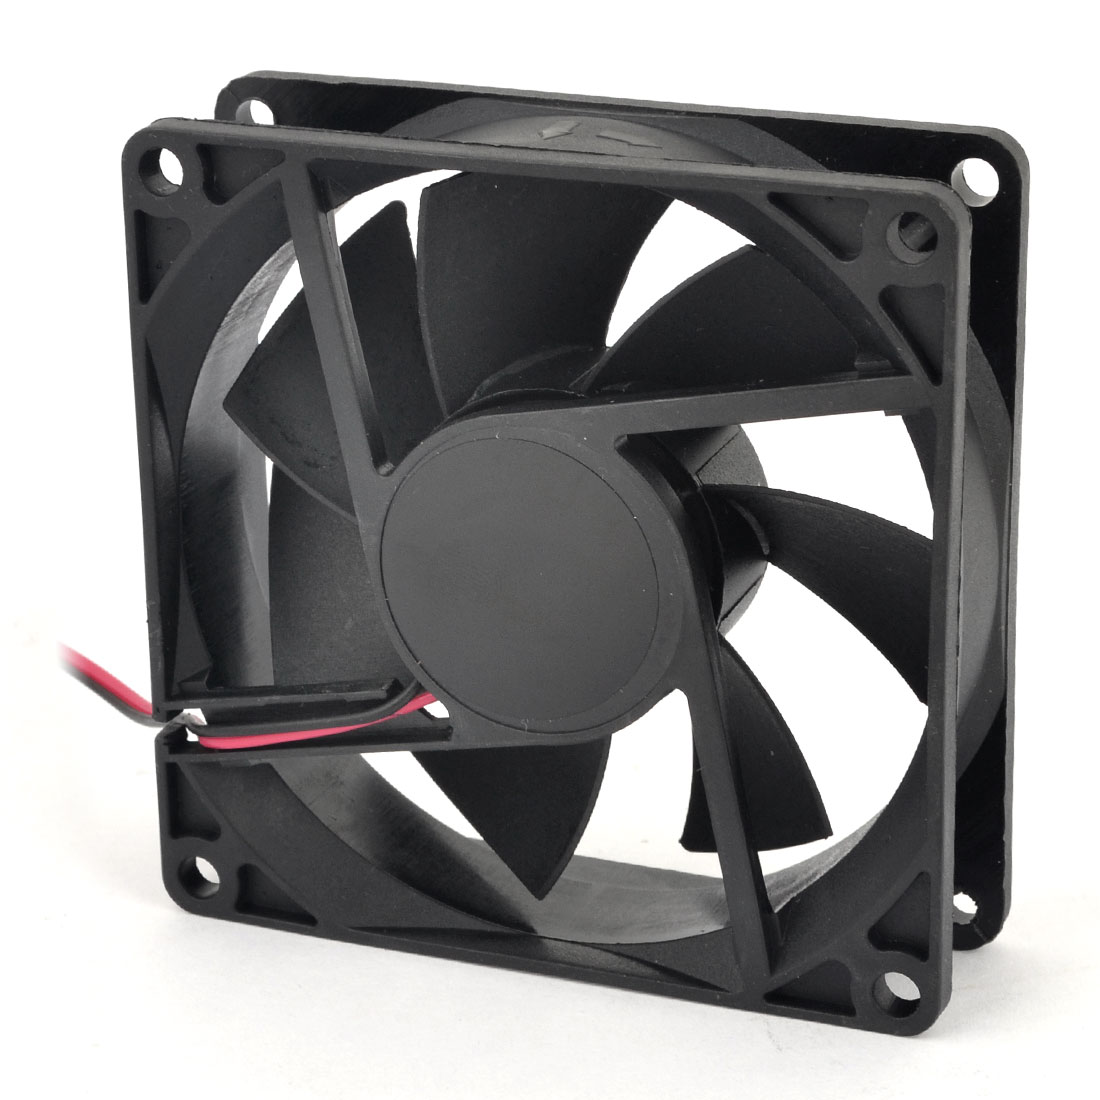 DC 12V Black Plastic Shell Cooling Fan 80mm x 80mm for PC Computer